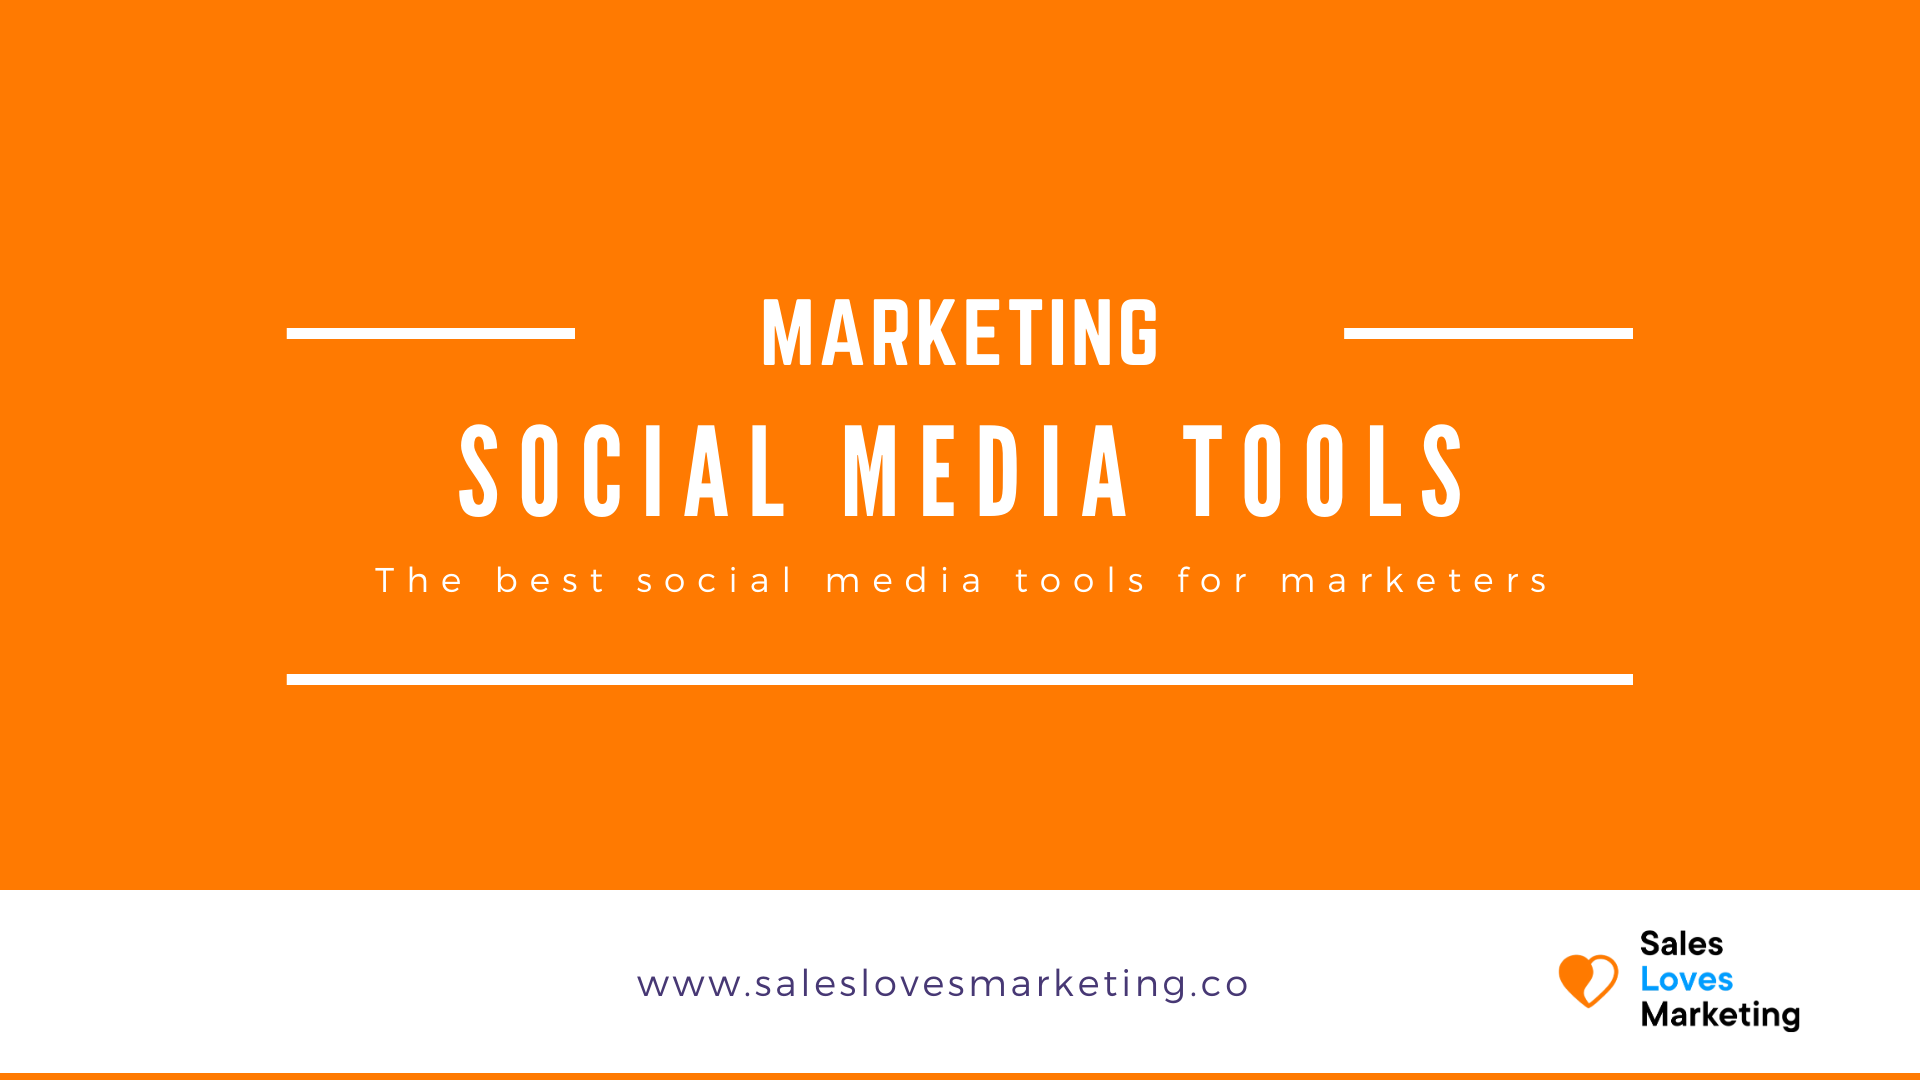 Overview of the best social media tools for b2b marketers